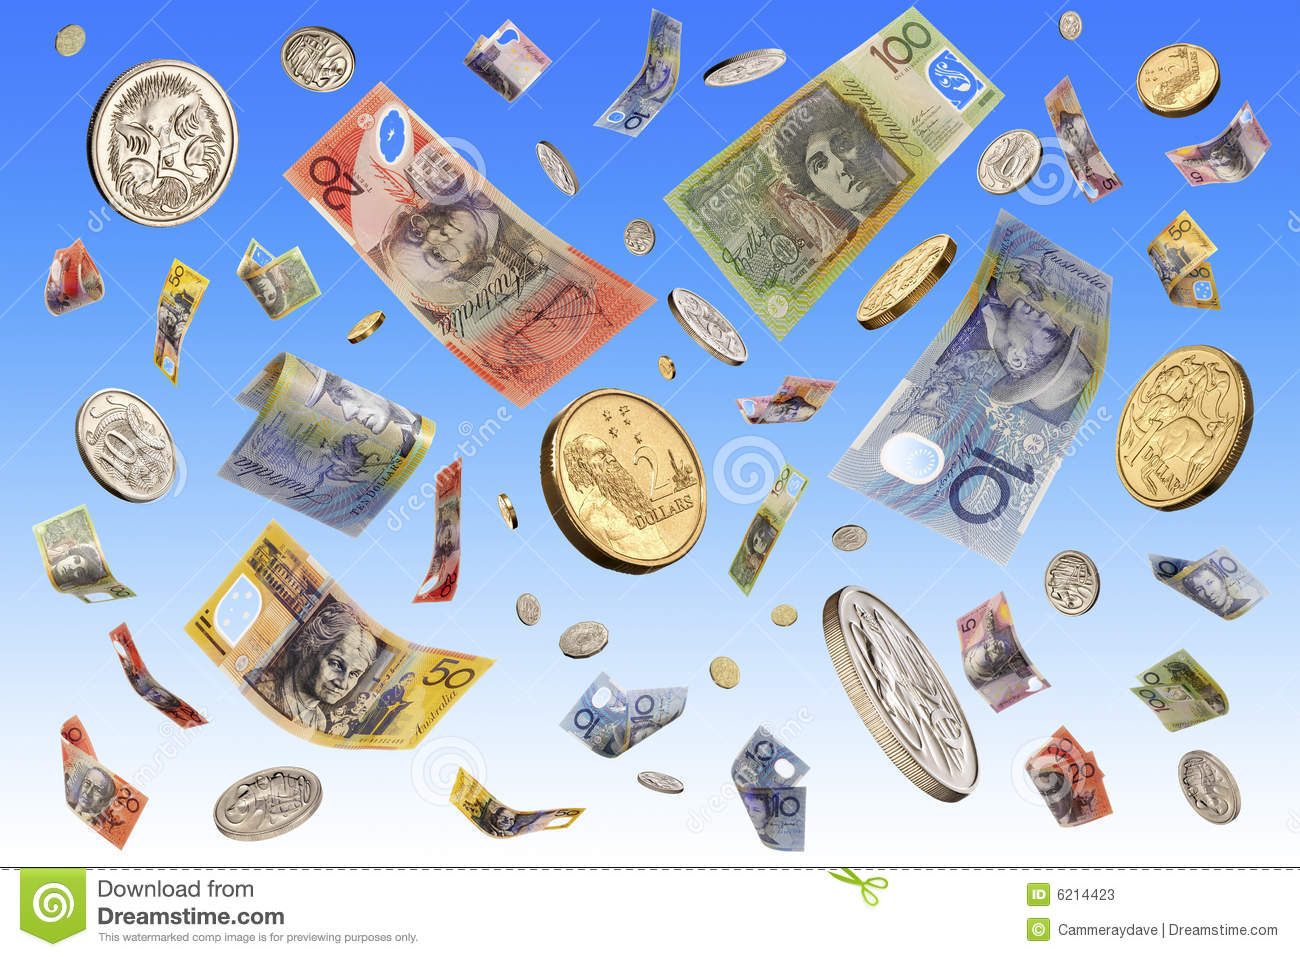 Australian money notes and coins falling through the air.